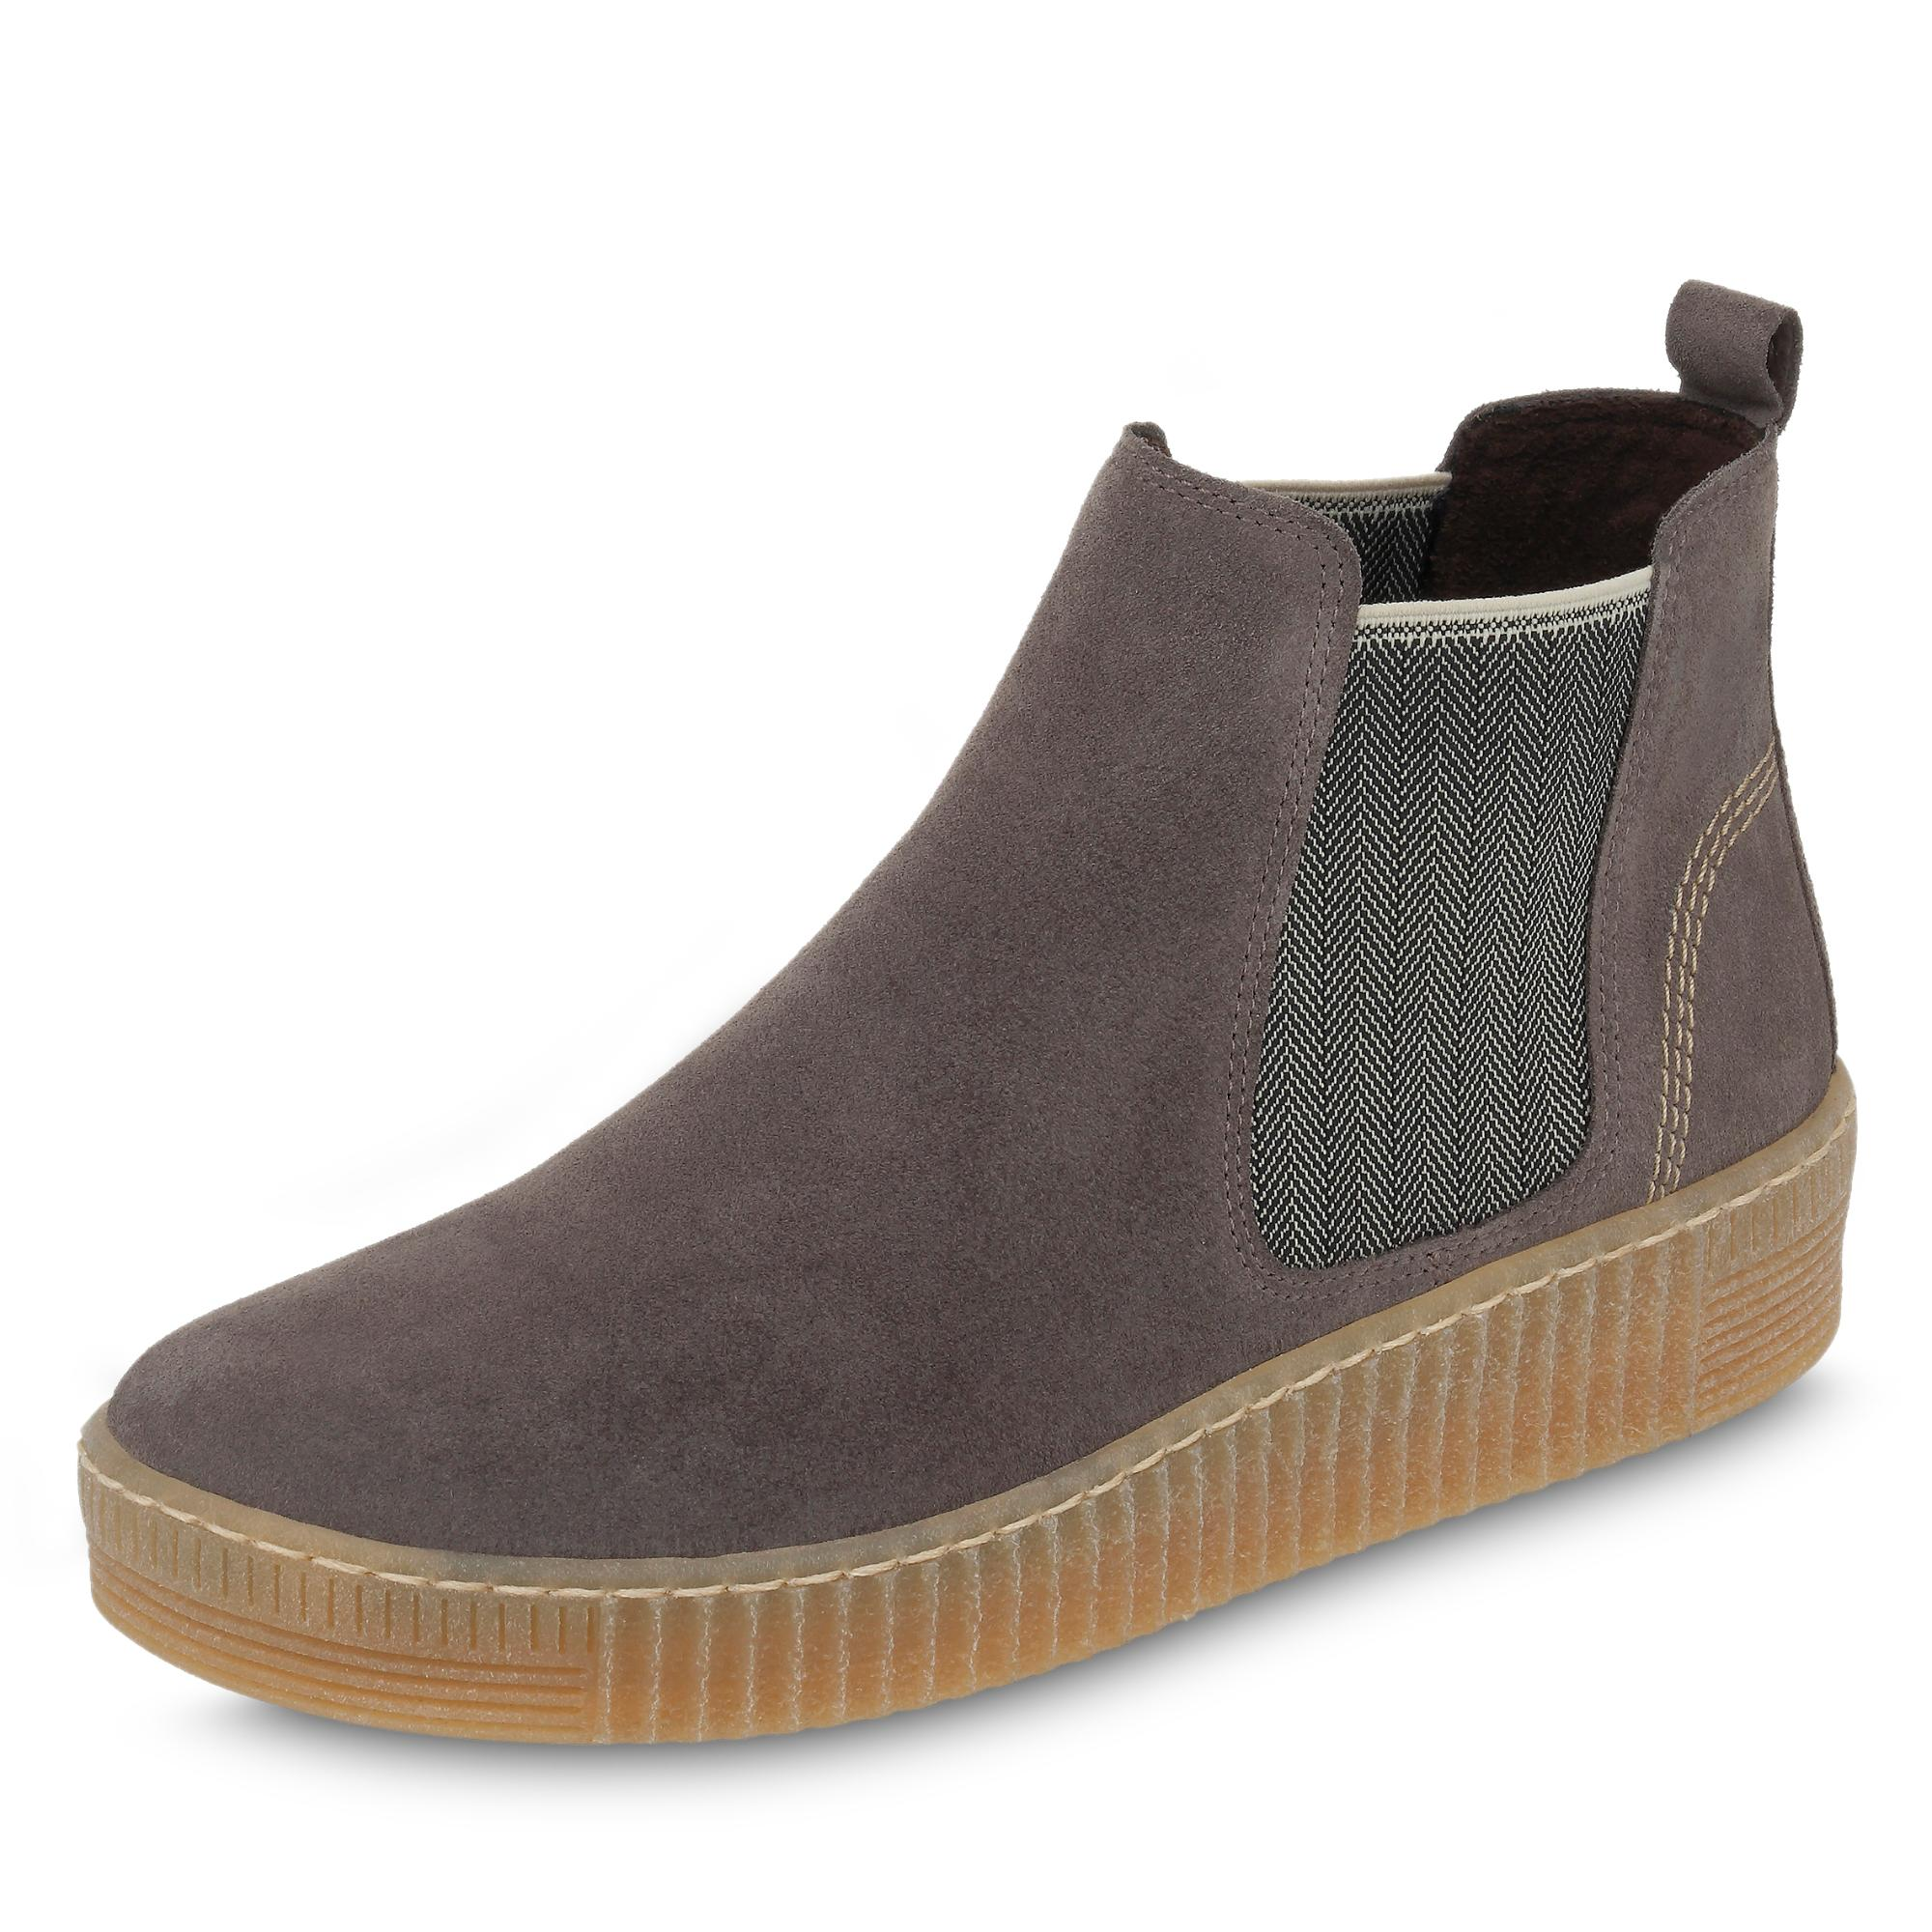 Gabor Boots - taupe | Markenschuhe